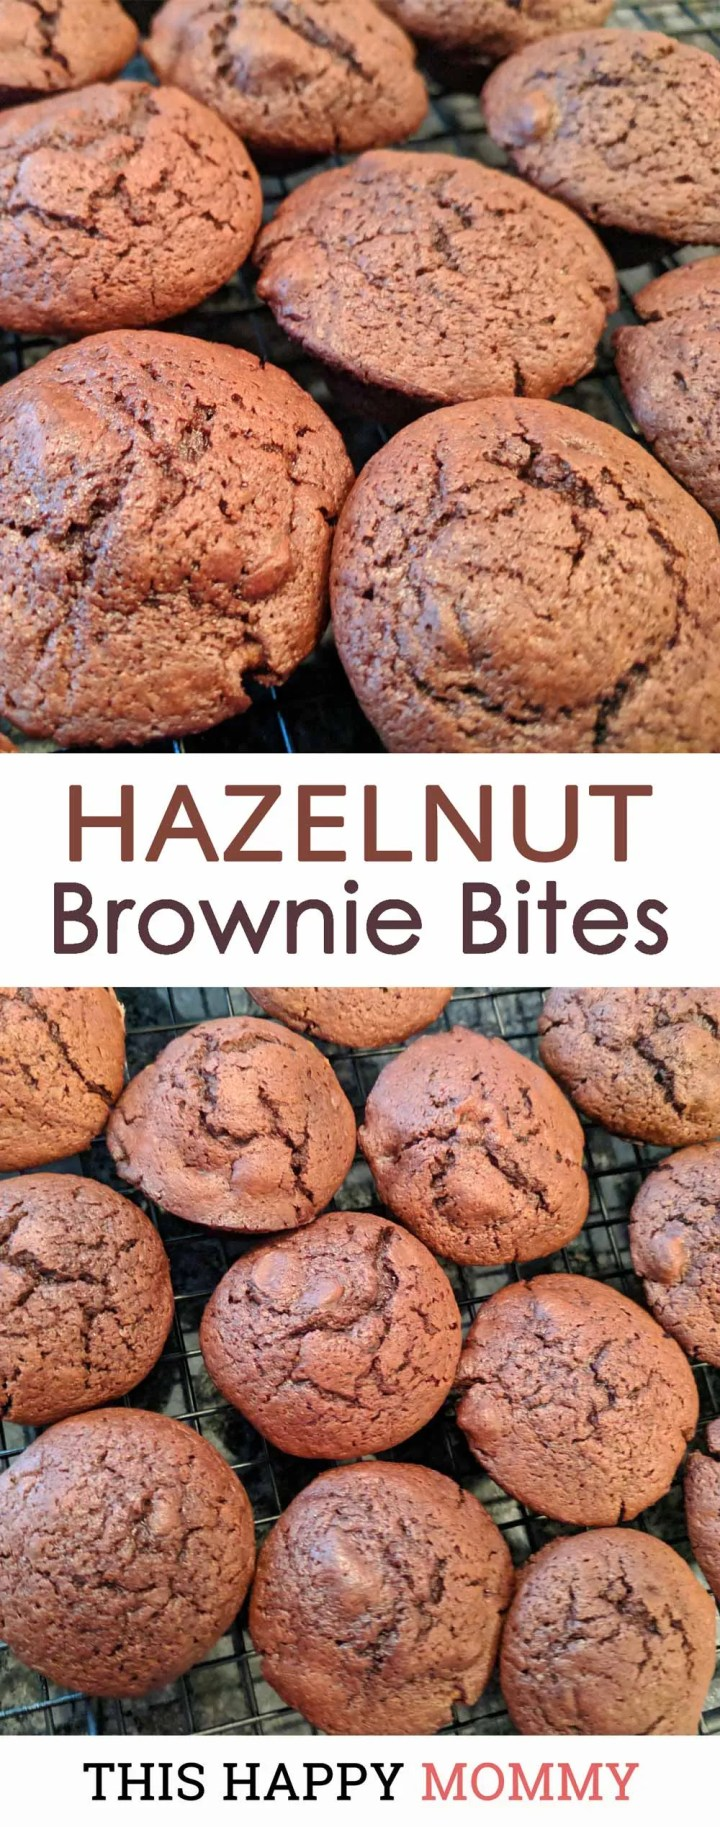 Decadent, chocolatey brownies that are sweet, satisfying, and yes, low fat. Best of all, Hazelnut Brownie Bites are so moist and chocolatey, no one will ever know that they are skinny desserts. Healthy Homemade Brownie   #recipe #dessert #chocolatedessert   this happymommy.com